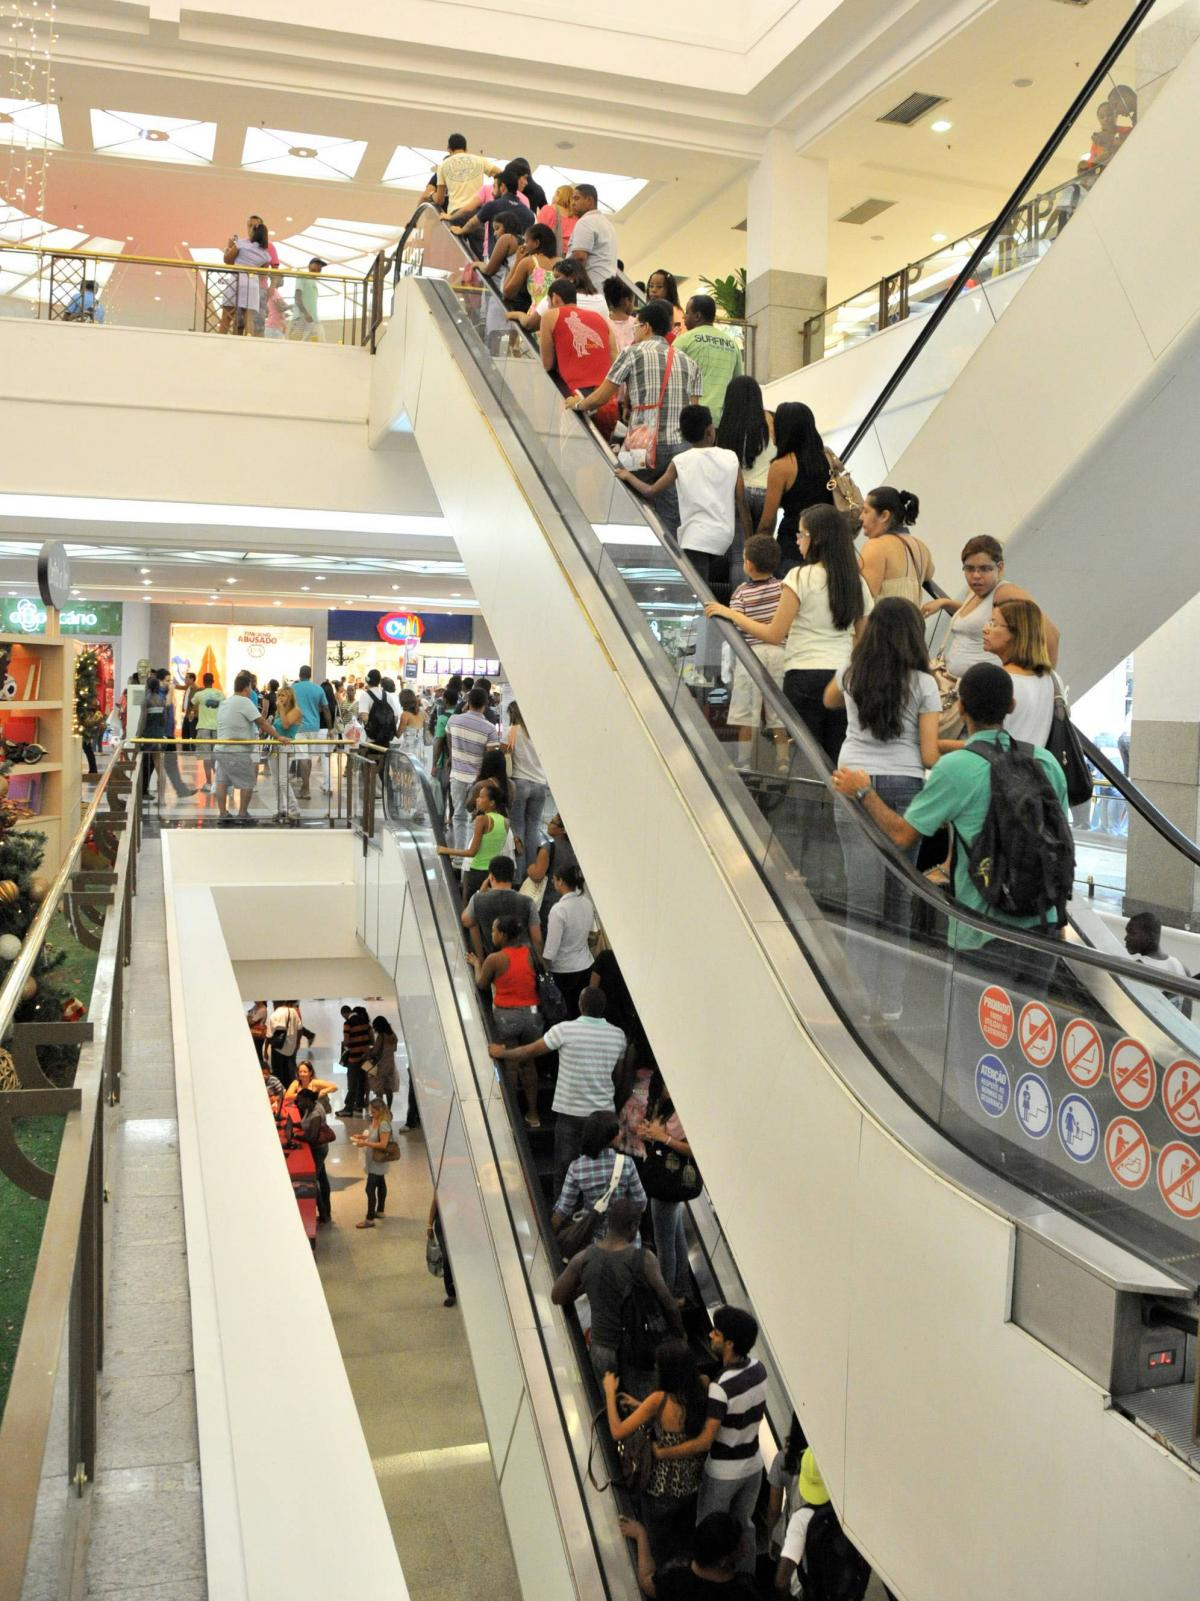 Christmas shoppers throng the Iguatemi mall in Salvador, Brazil, in 2012.